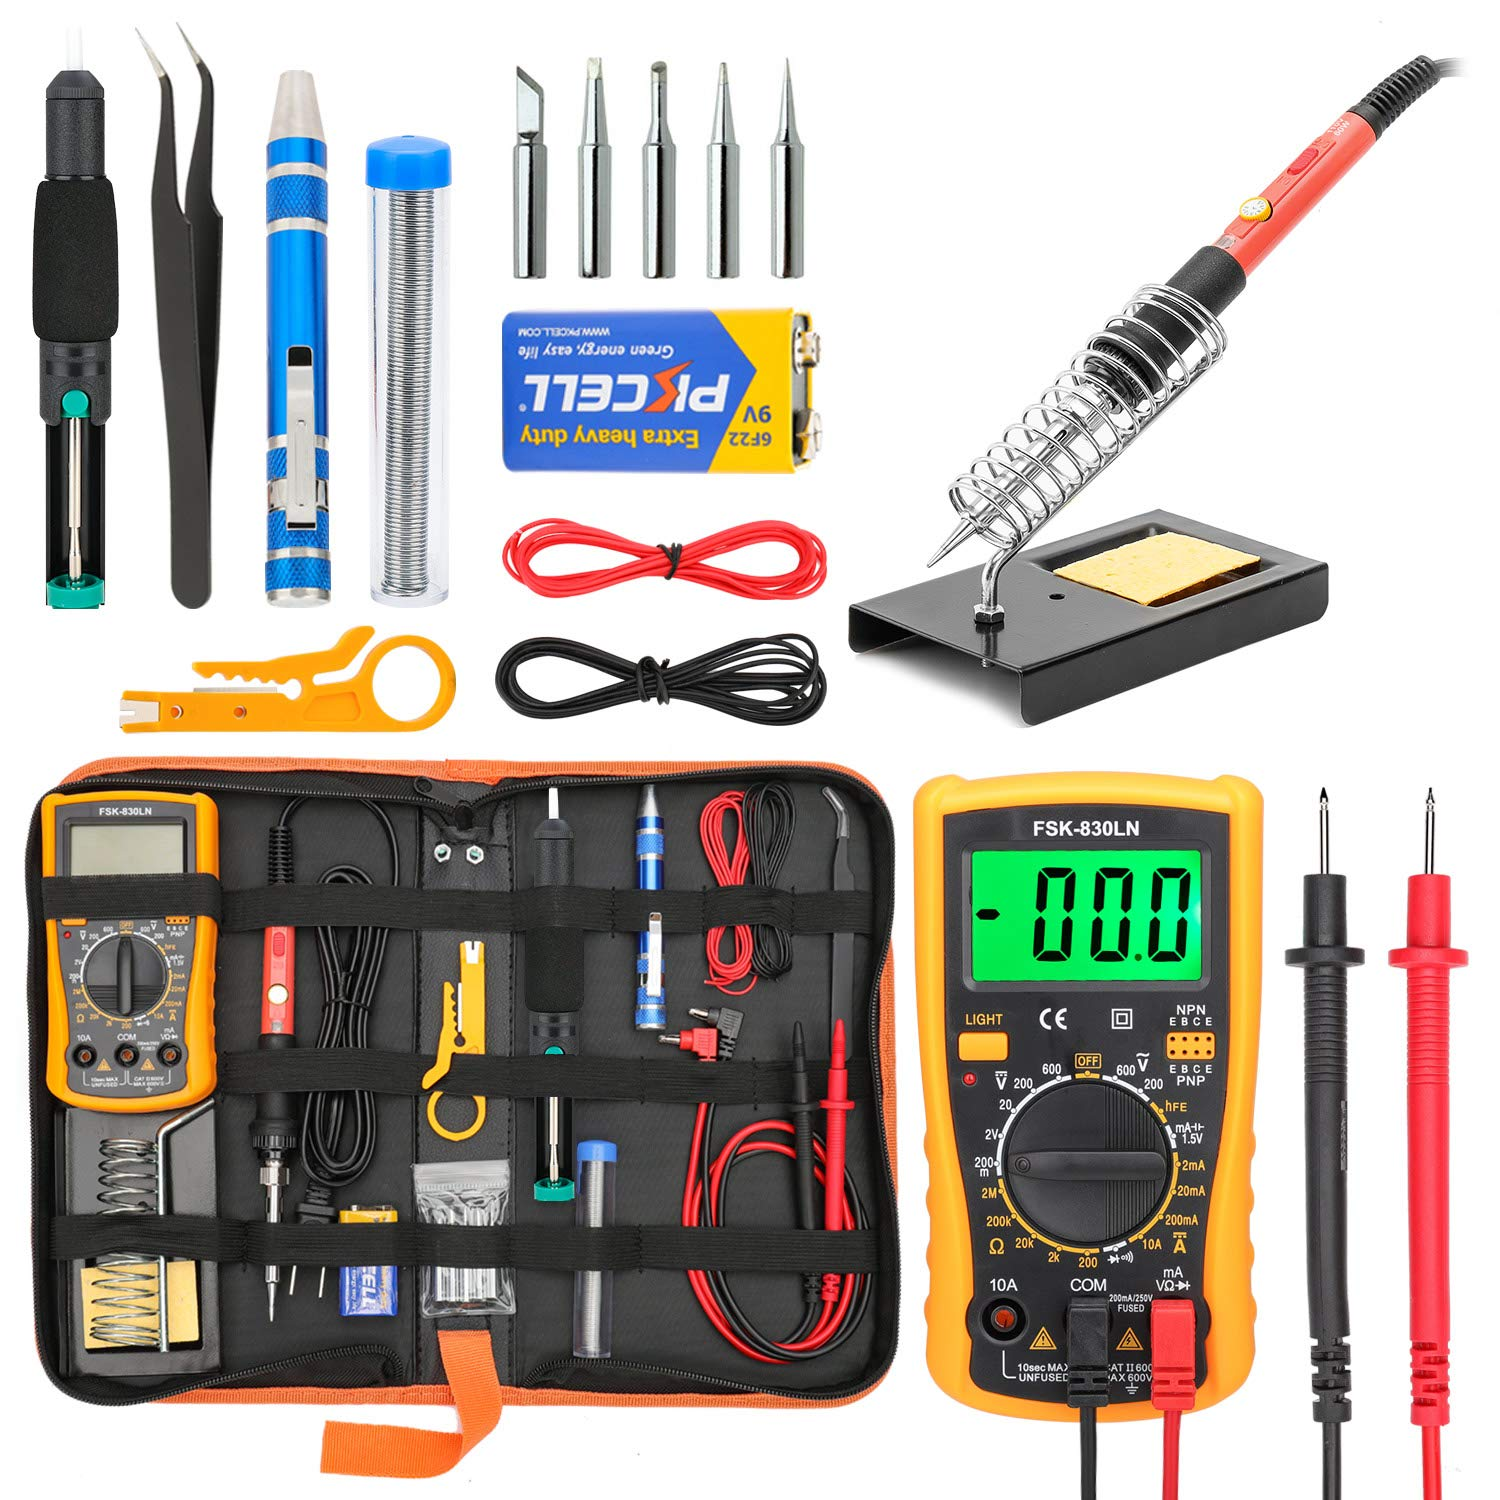 Soldering Iron Kit for Electronics, Yome 19-in-1 60w Adjustable Temperature Soldering Iron with ON/OFF Switch, Digital Multimeter, 5pcs Soldering Iron Tips, Desoldering Pump, Screwdriver, Stand by Yome